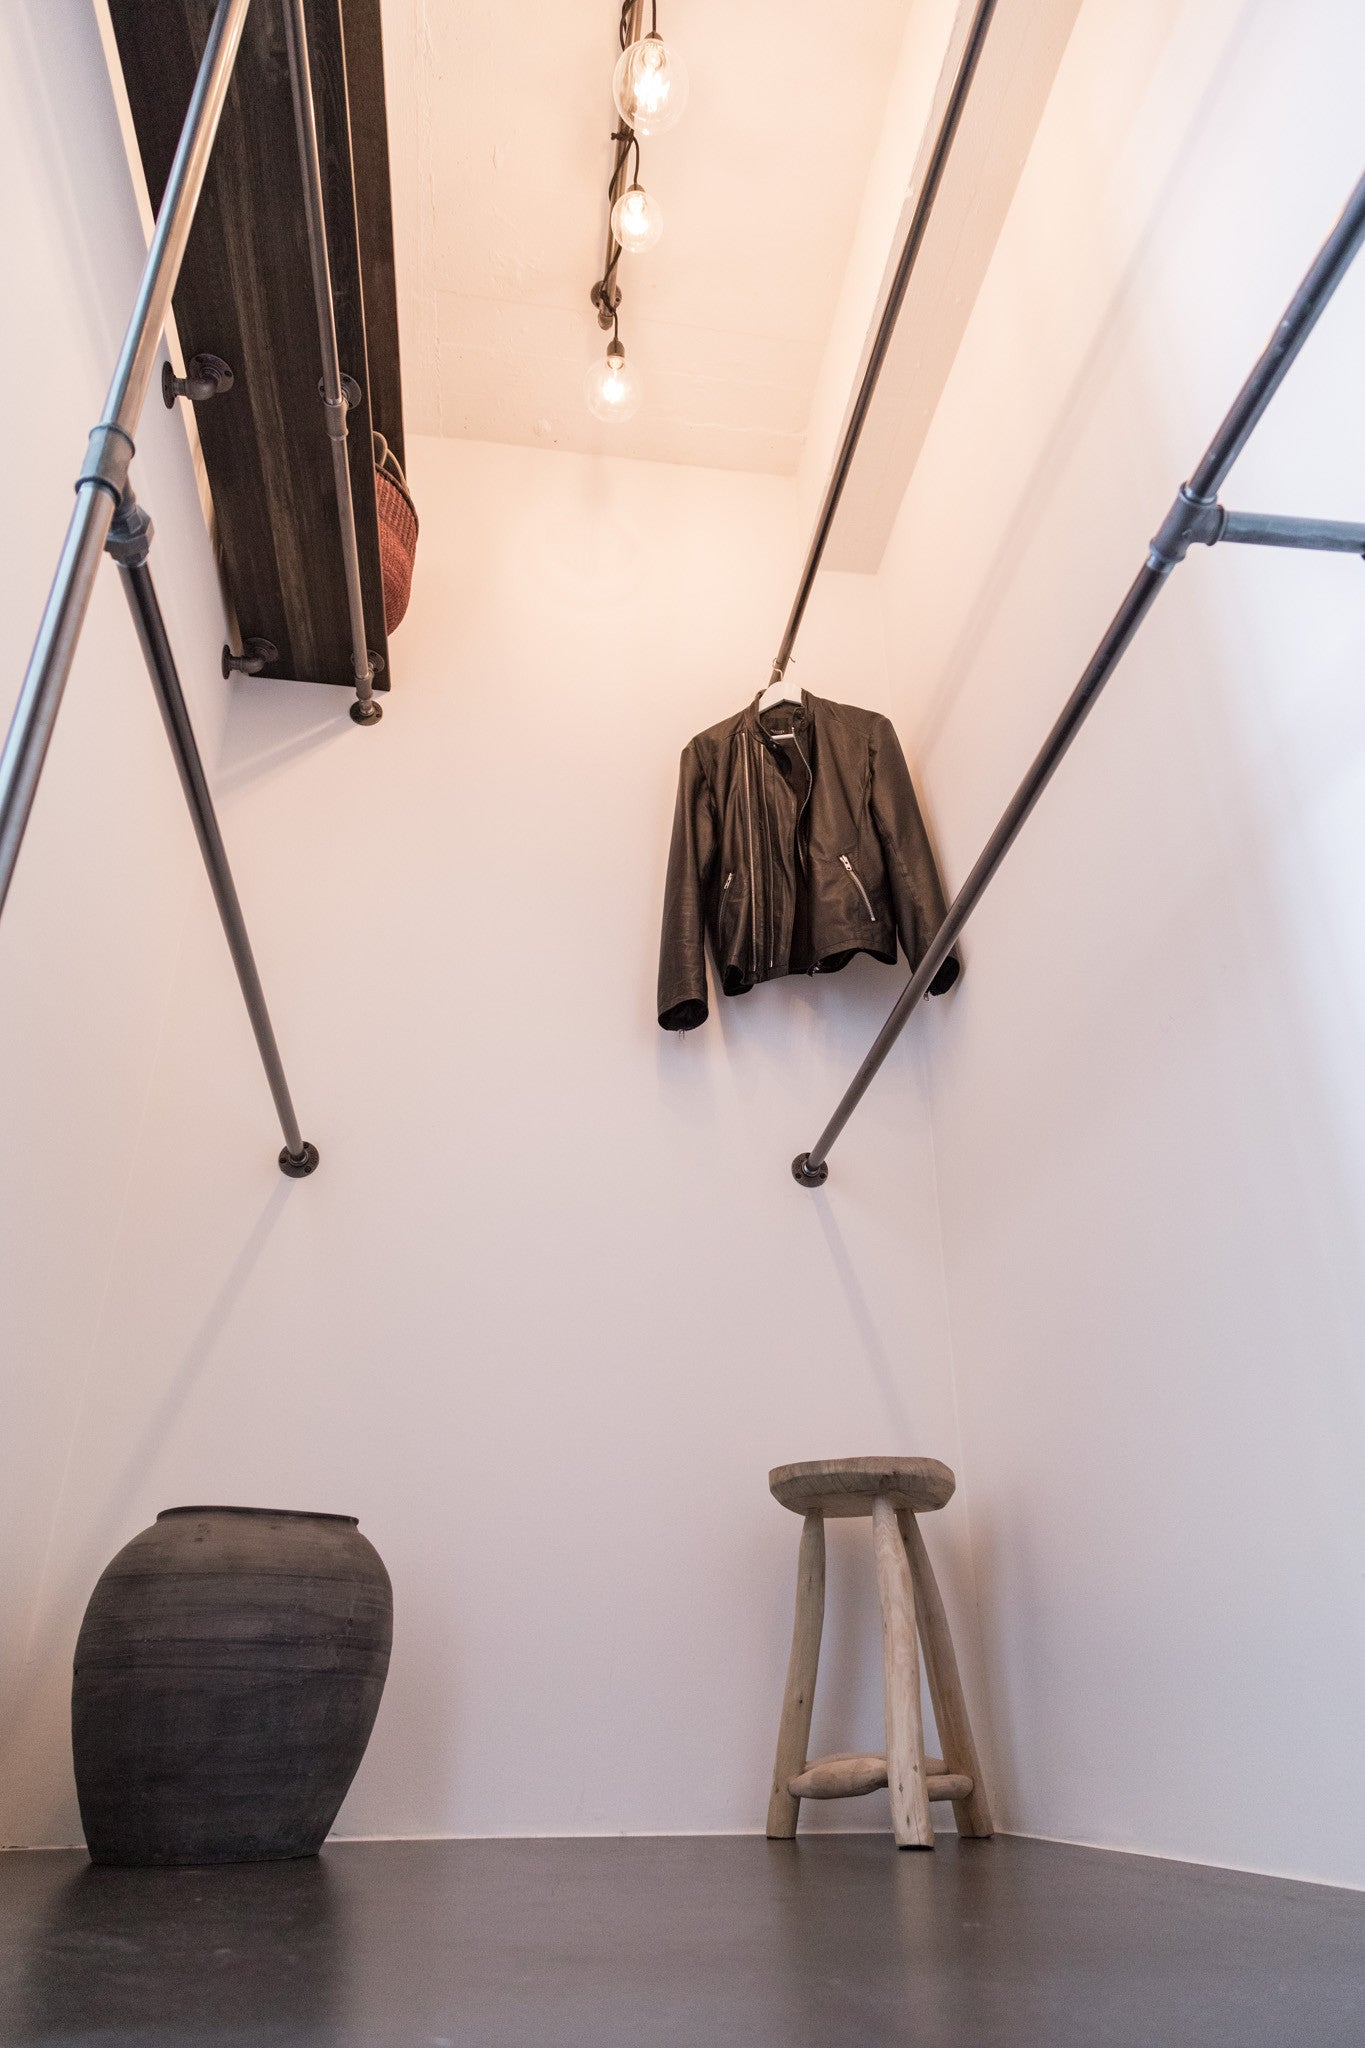 Walk-in closet Lösung in STAY Copenhagen - industrielles Design von RackBuddy